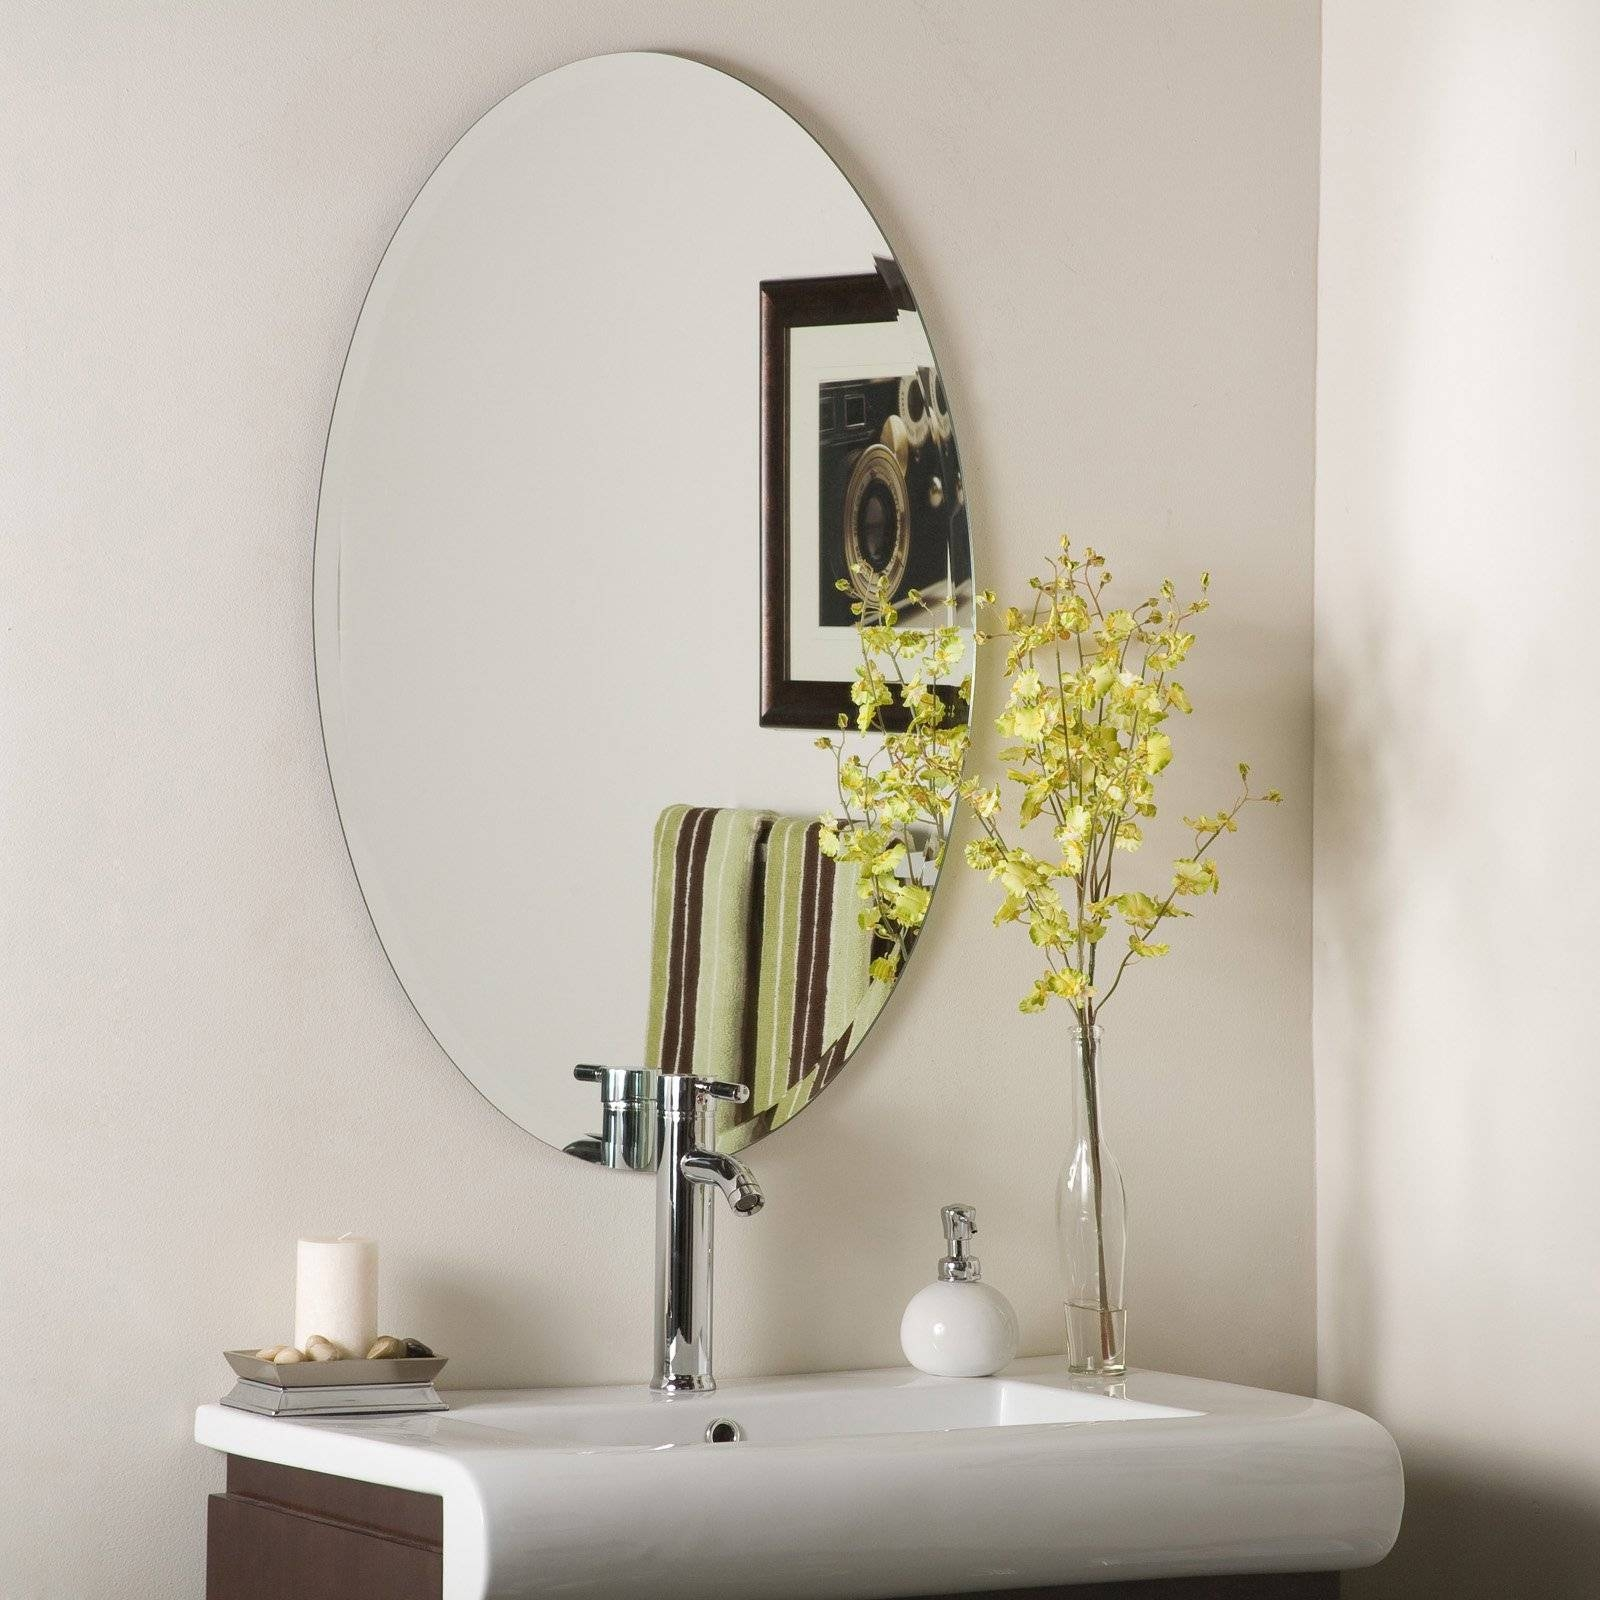 Uttermost Frameless Oval Beveled Vanity Mirror | Hayneedle in Frameless Wall Mirrors (Image 15 of 15)